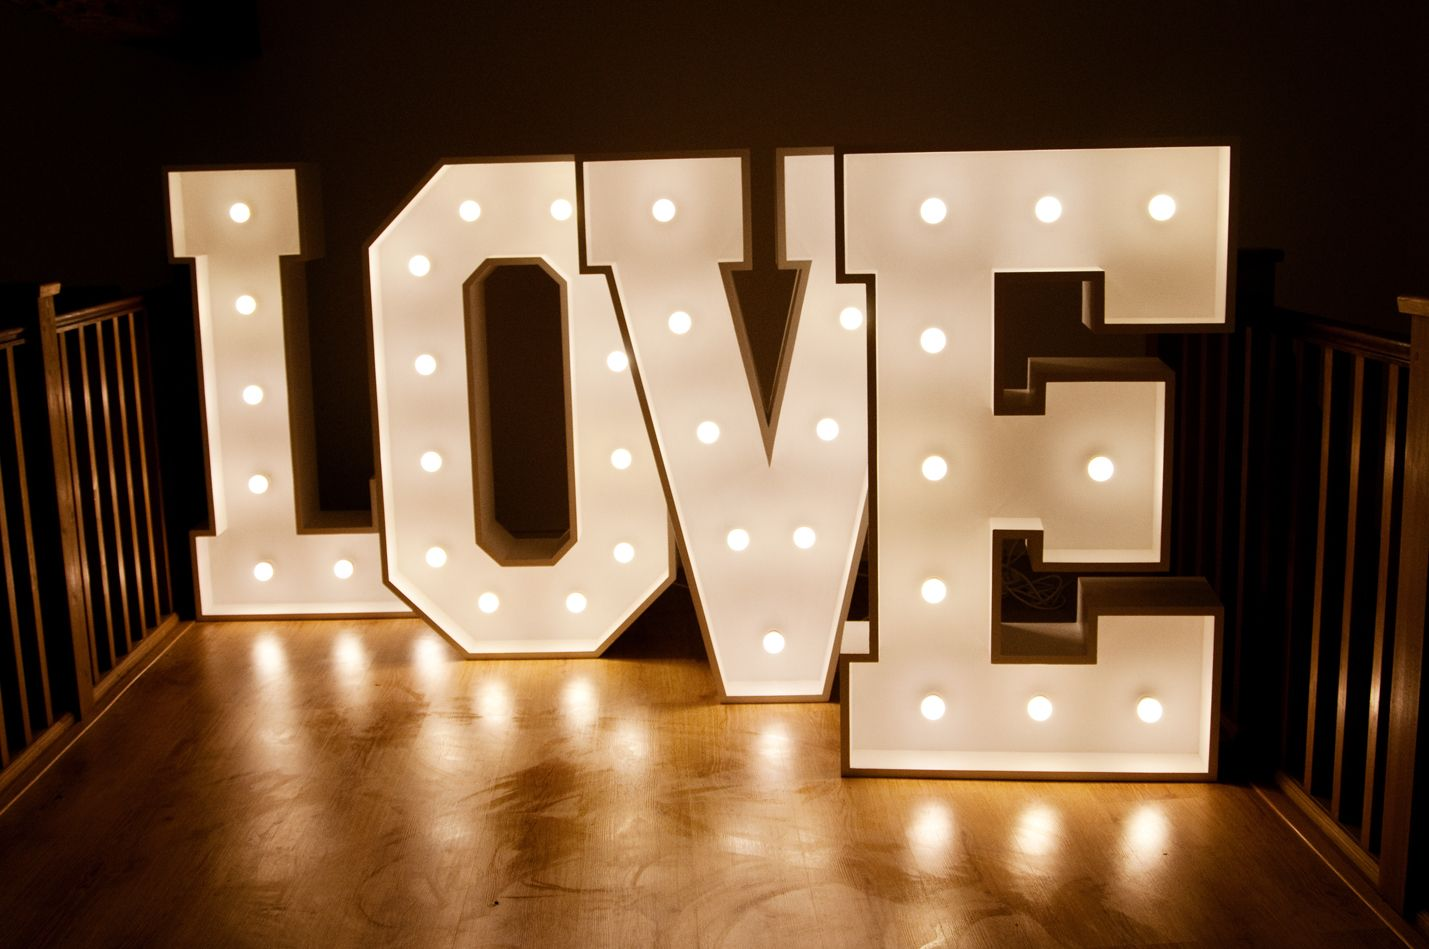 Light Up Letter For Hire Marquee Lights Letter Lights Wedding Decor Illuminated Letters Lit Letters Glow Light Up Letters Light Letters Lights Wedding Decor